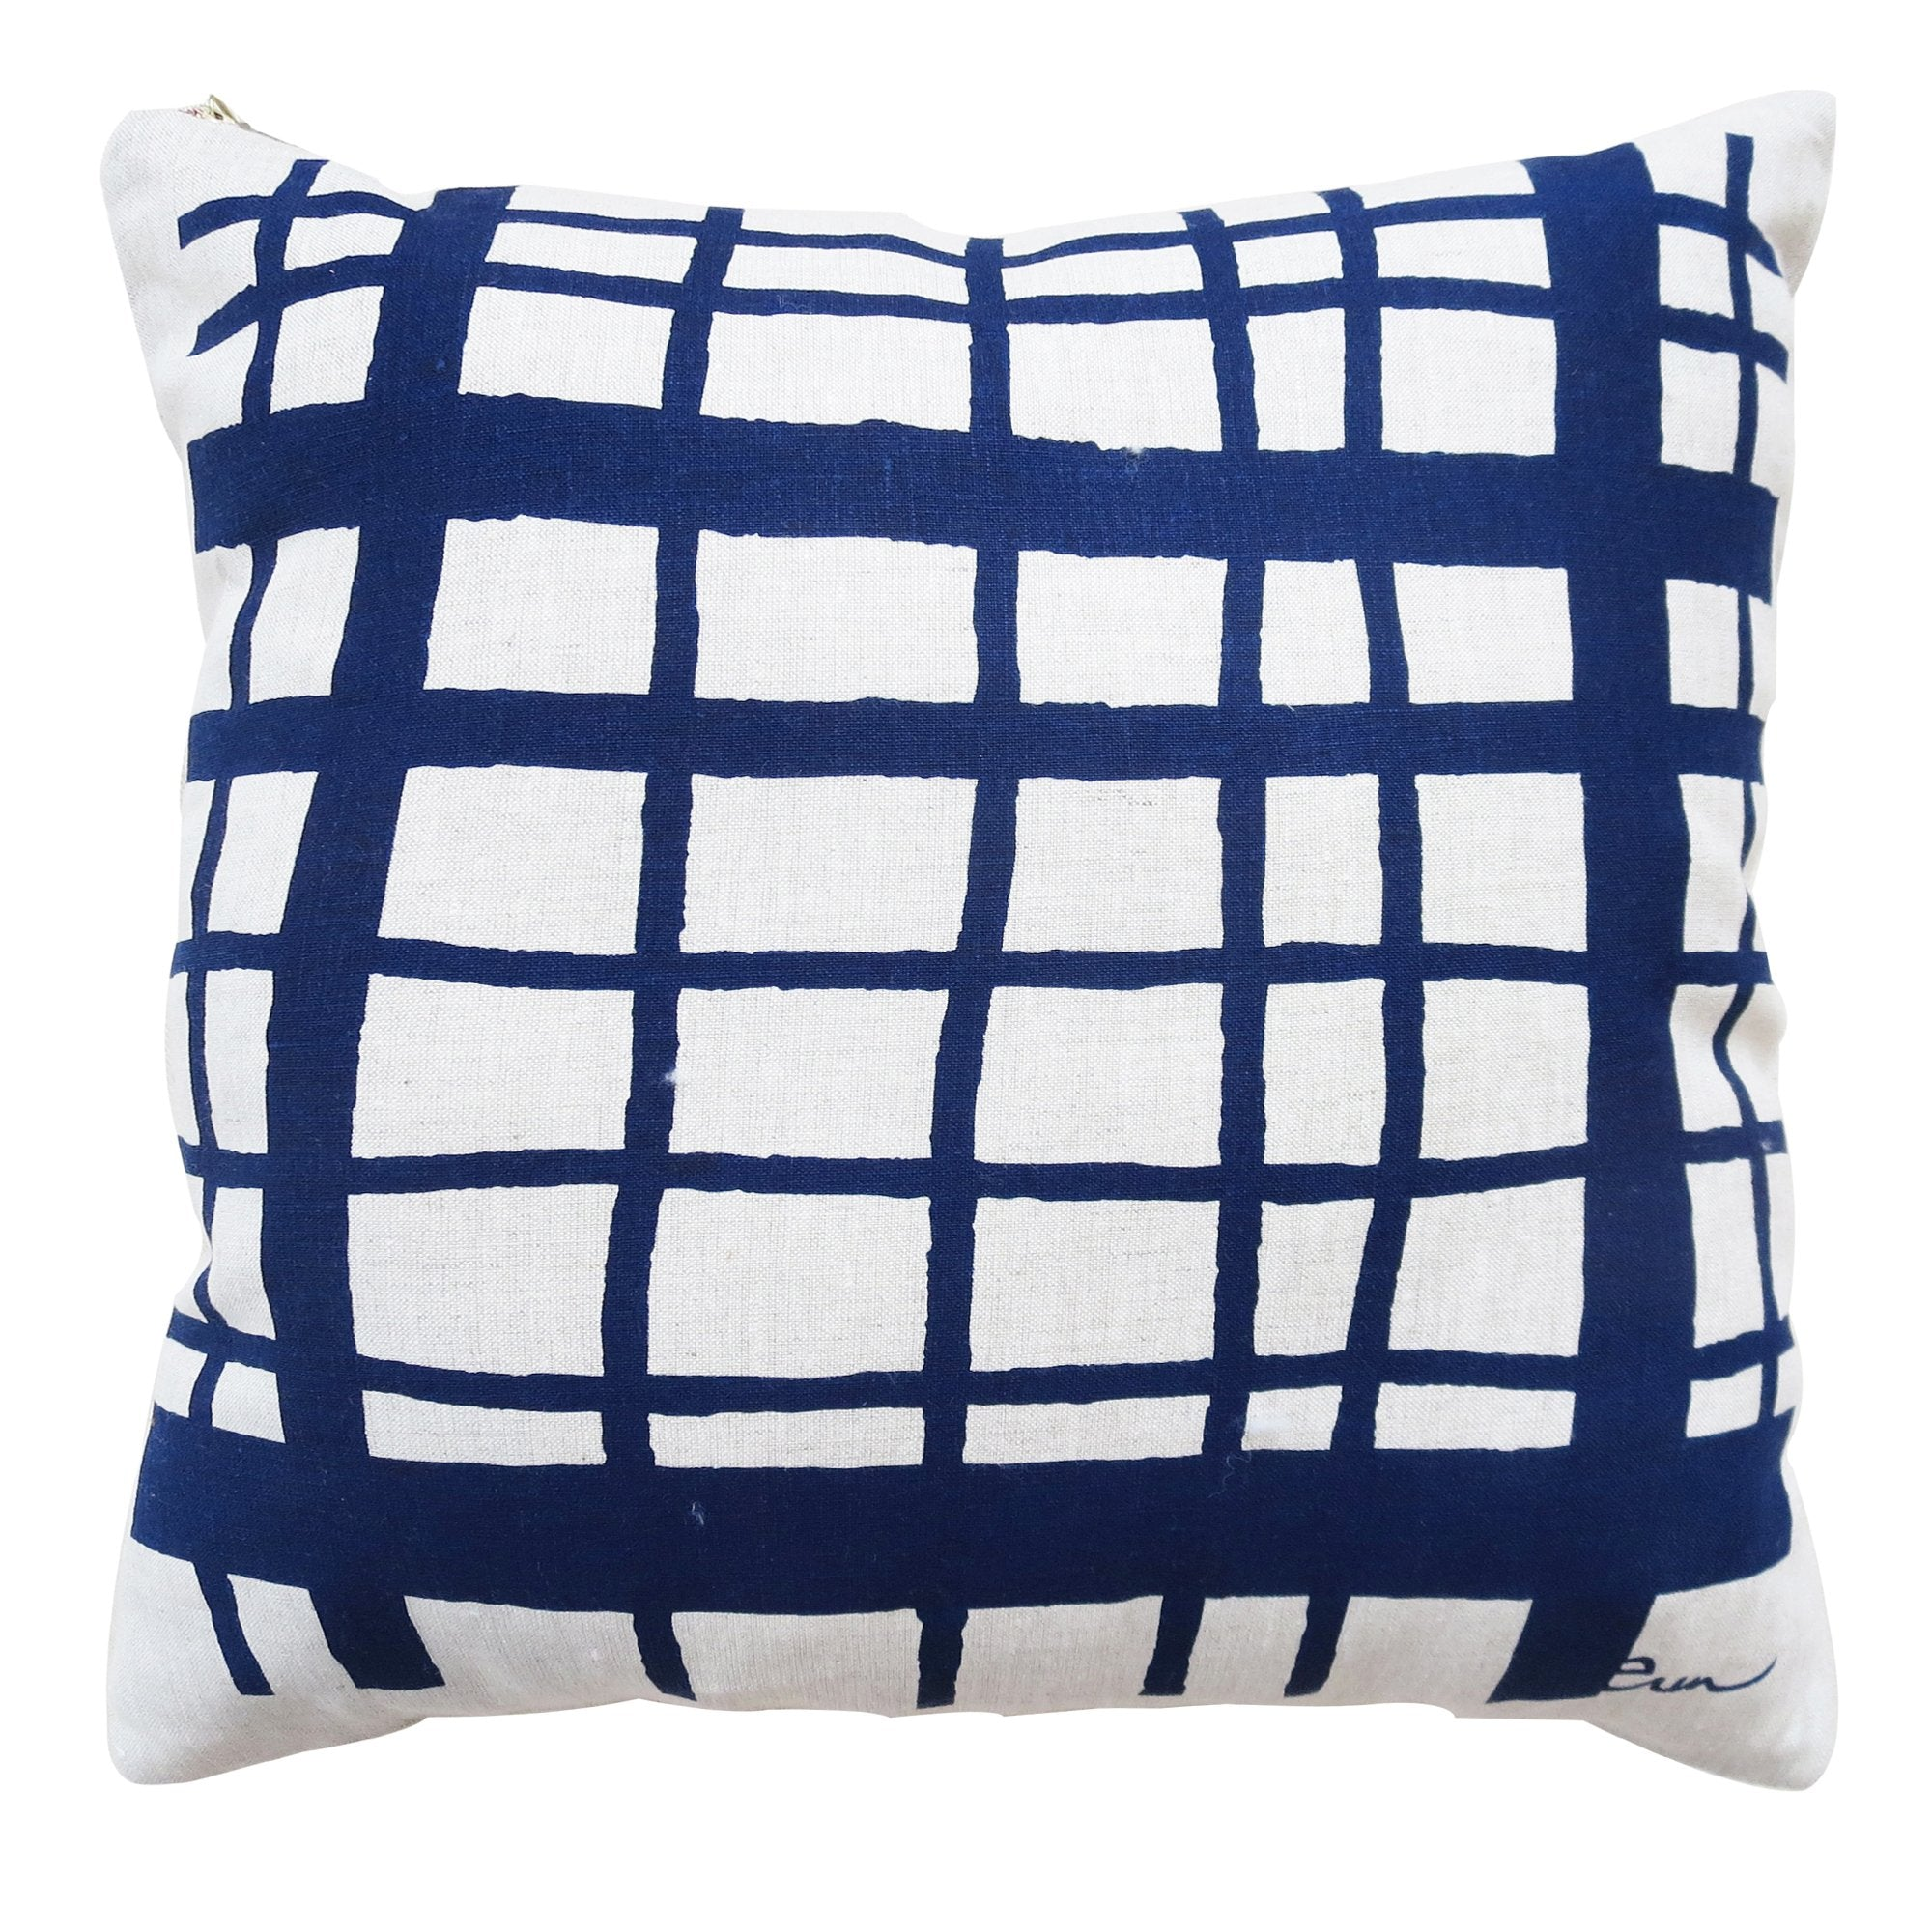 NAVY PICNIC OATMEAL LINEN PILLOW